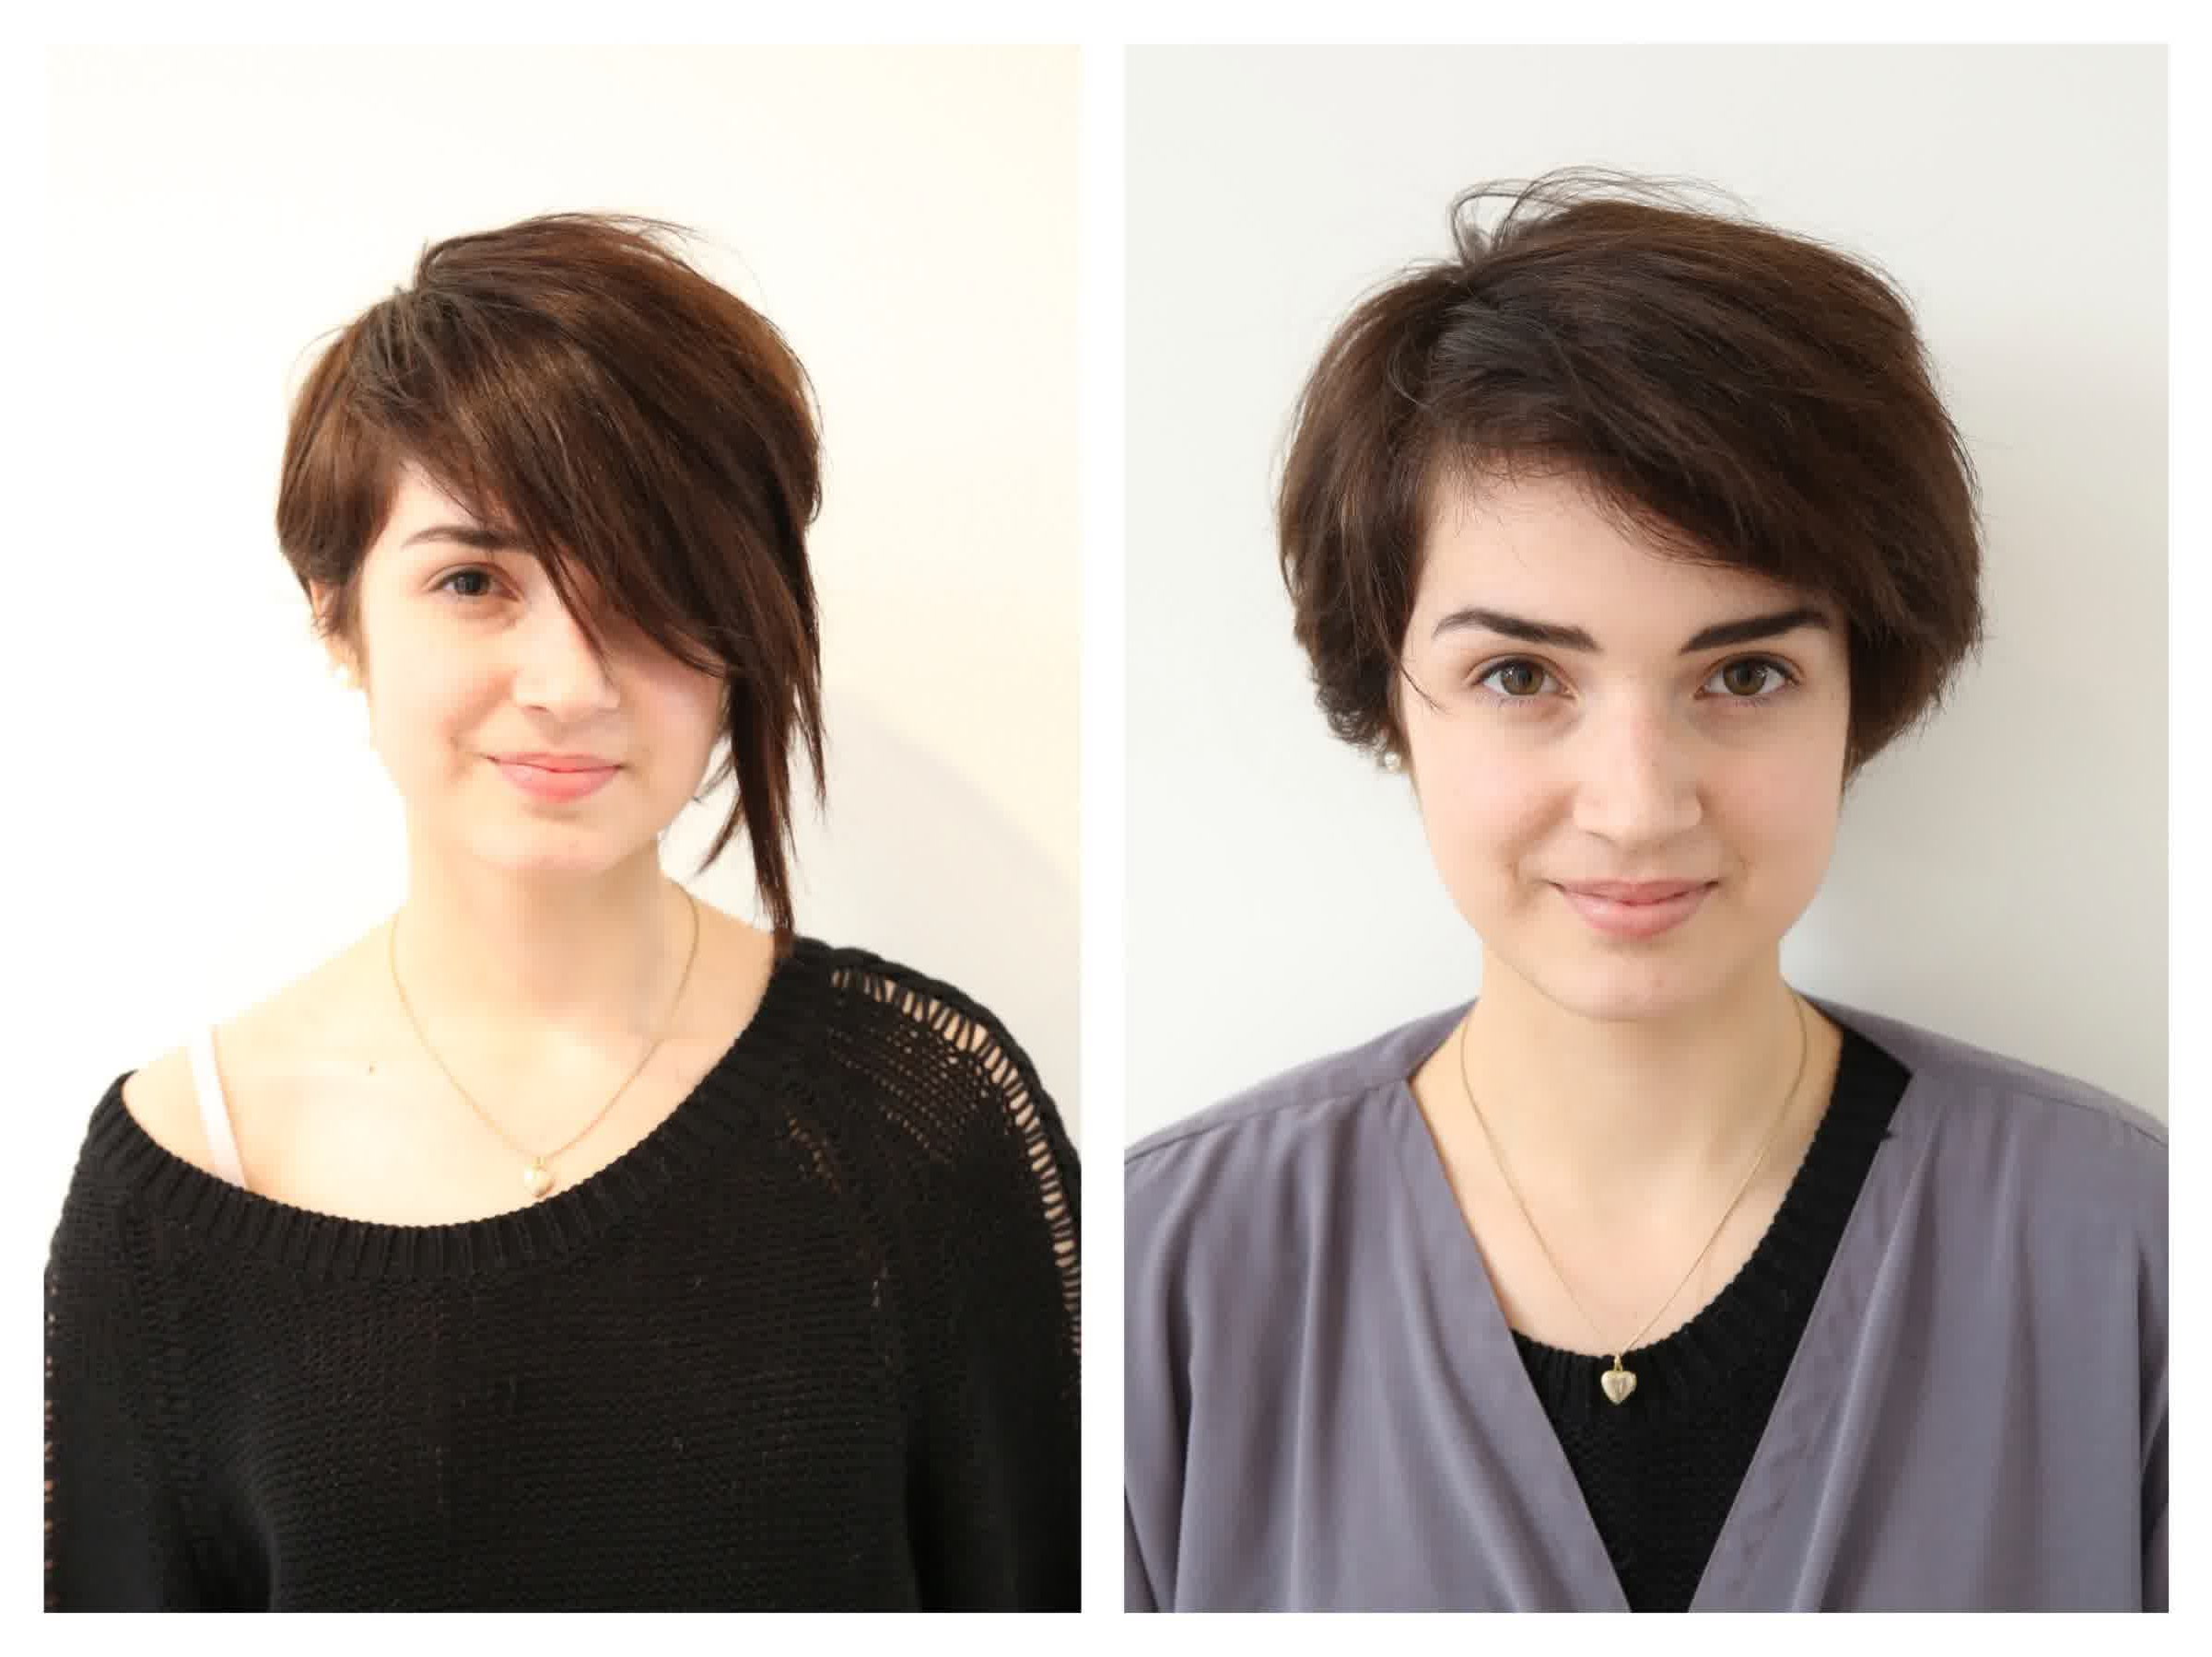 Asymmetrical Curly Short Haircuts – Google Search | Hair .. – Latest With Regard To Edgy Asymmetrical Short Haircuts (Gallery 10 of 25)